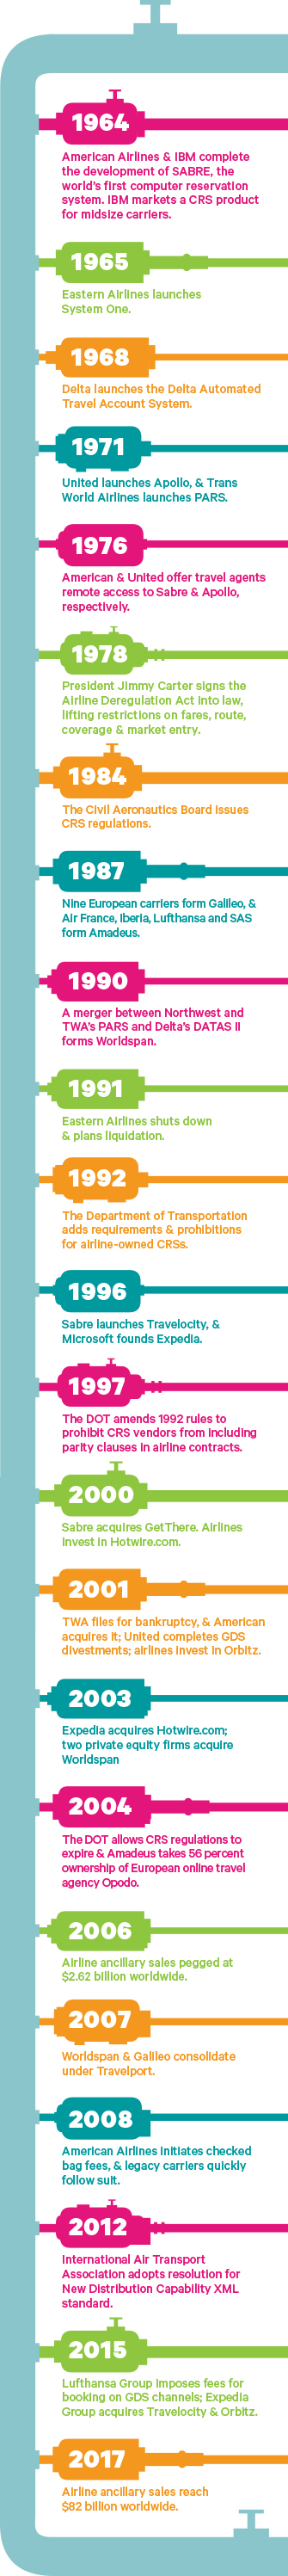 A Brief History of Air Travel Distribution: Business Travel News